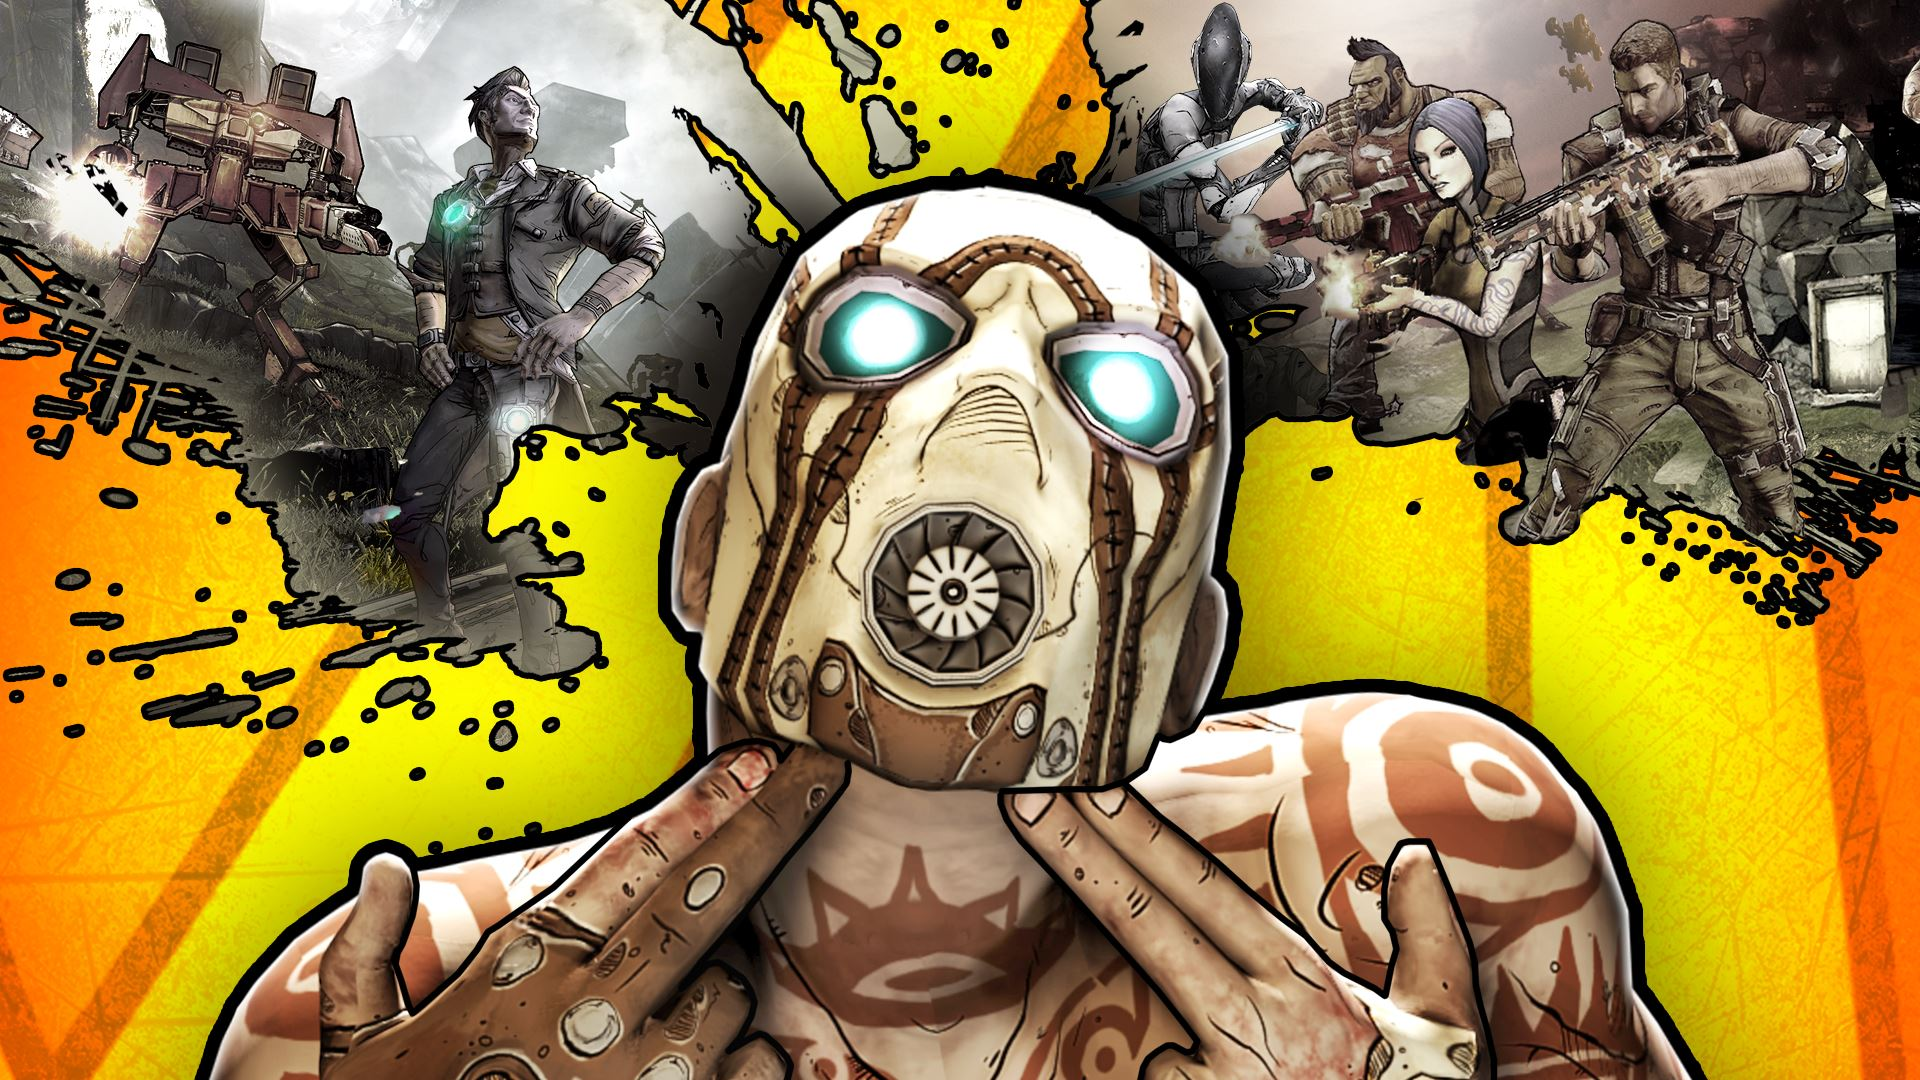 image 5 Gearbox Confirm Borderlands 3 Is Their Next Project